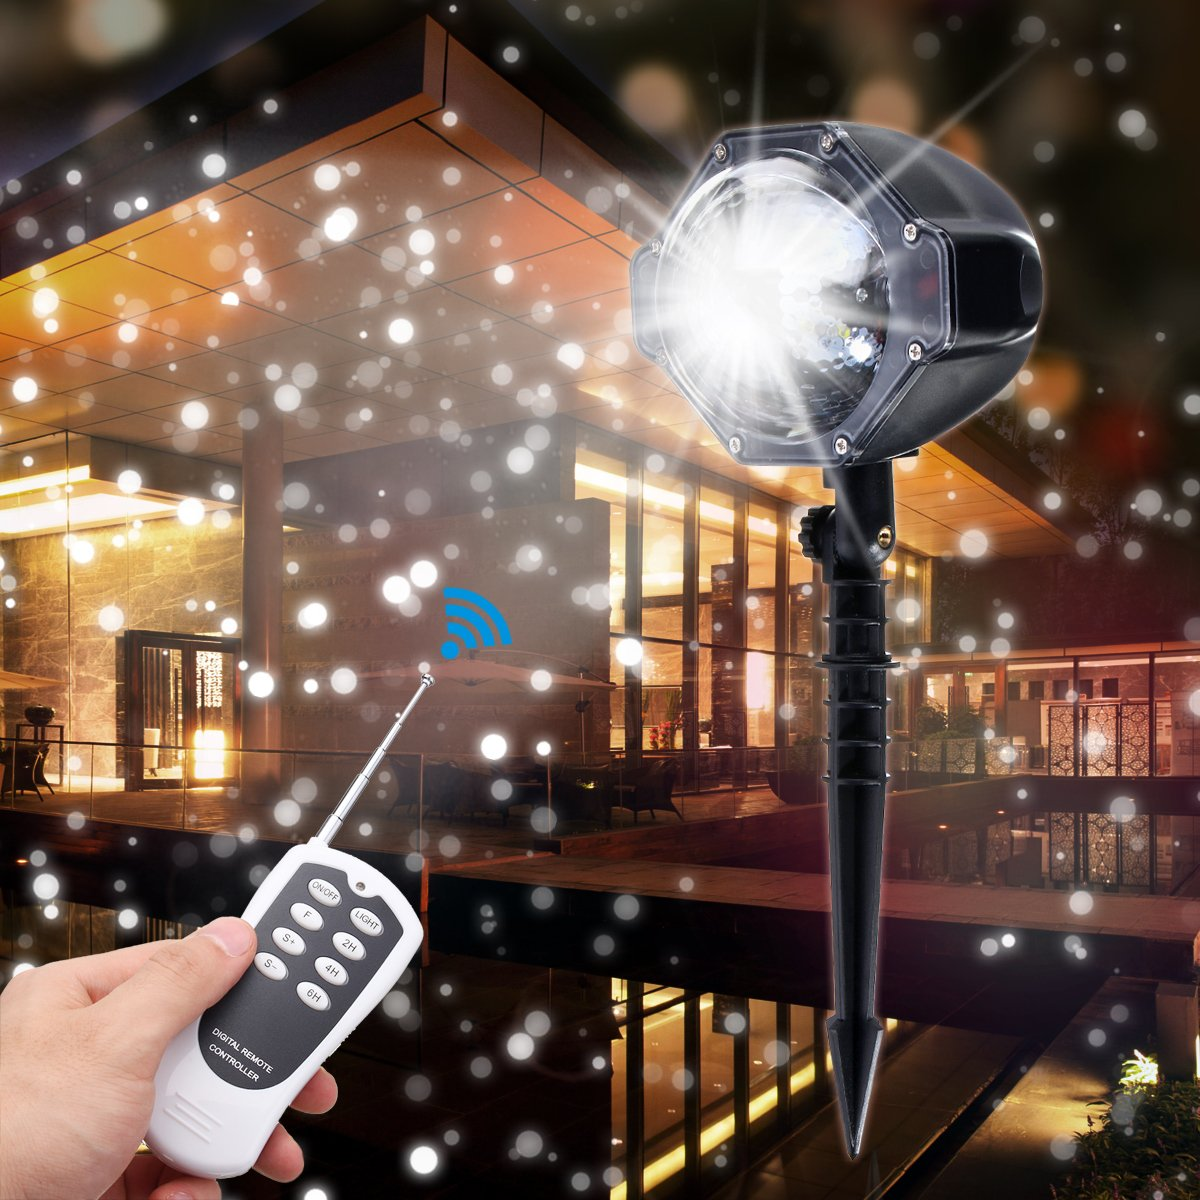 LED Projector Light, Elfeland LED Snowflake Light Landscape Motion Projection Light White Snowfall Spotlight for Wedding Holiday Dating Party Home Decoration Yard Garden (Waterproof Remote Control)